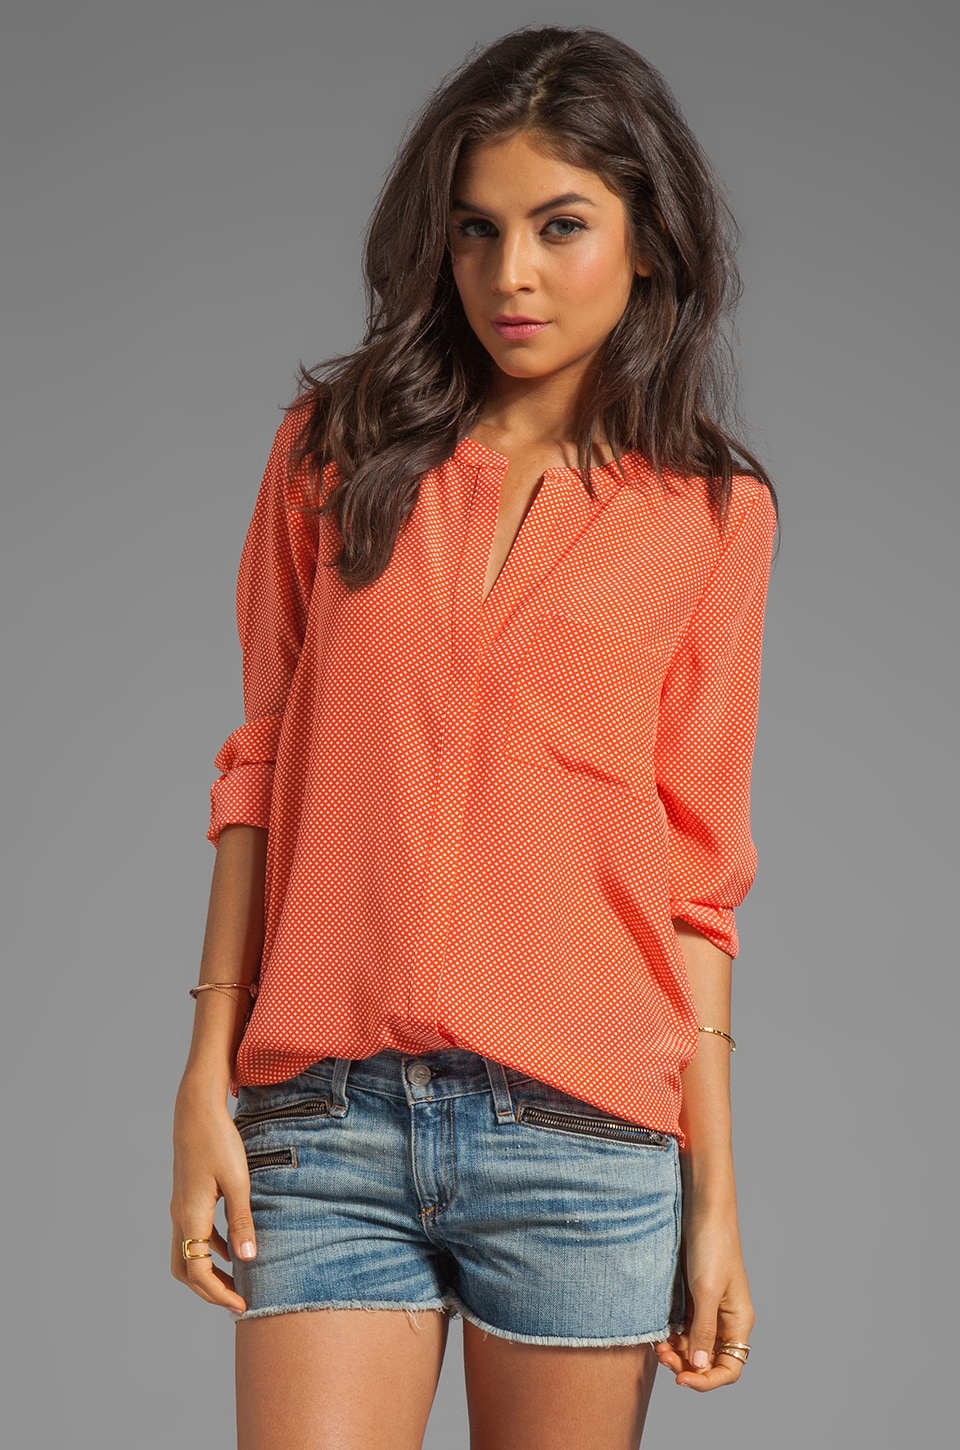 Joie Hanelli Diamond Print Blouse in Spicy Orange